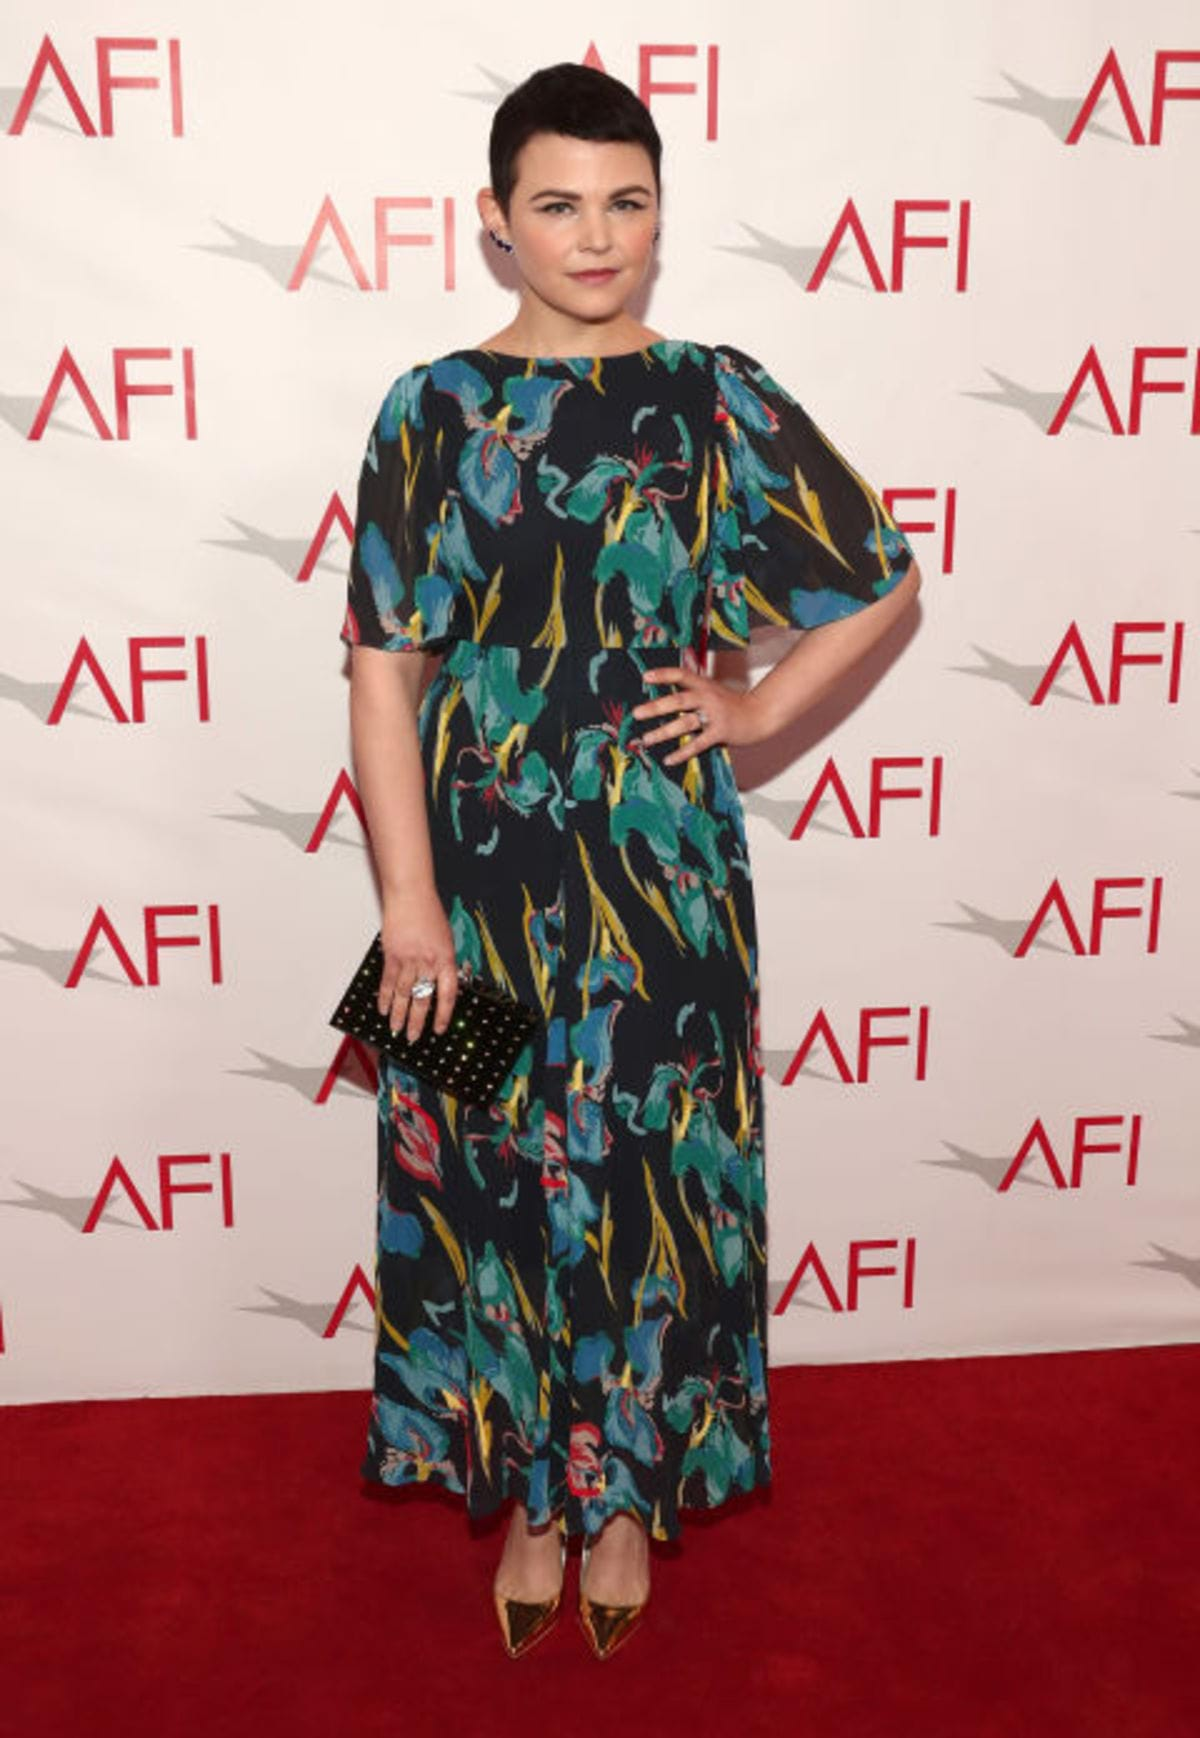 1483811232-afi-4_ginnifer-goodwin